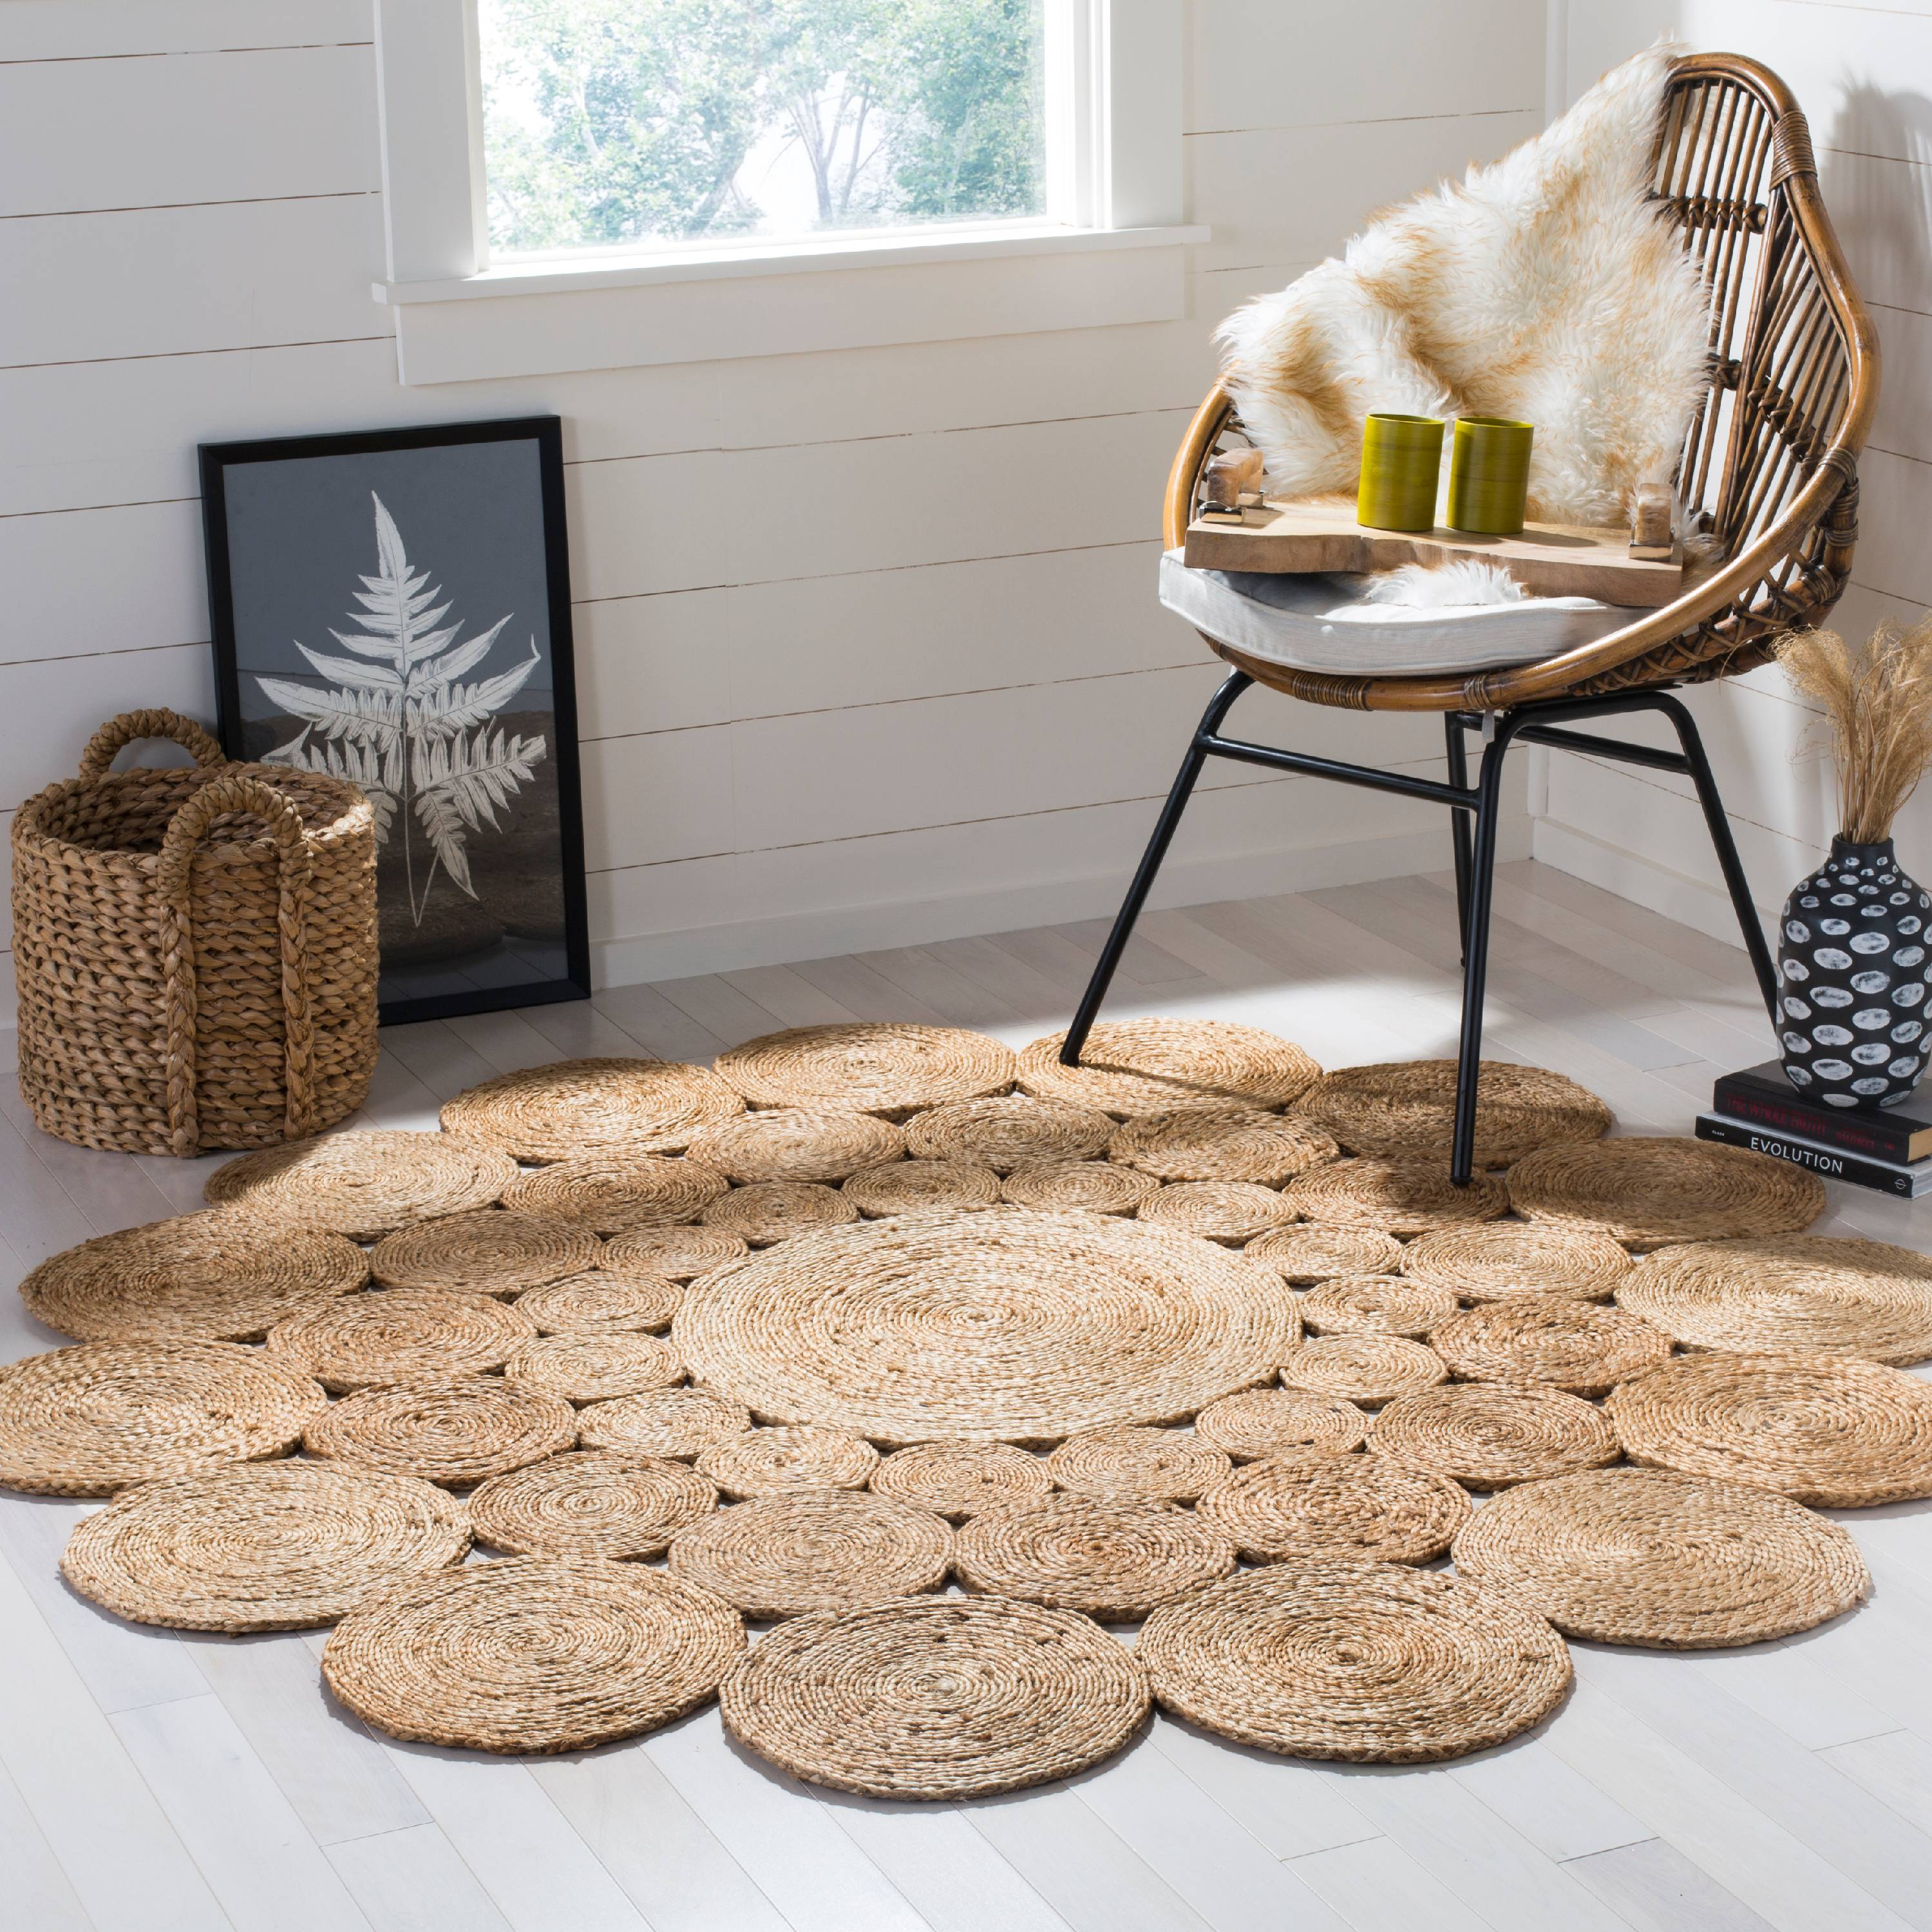 Safavieh Natural Fiber Christian Geometric Circle Braided Area Rug